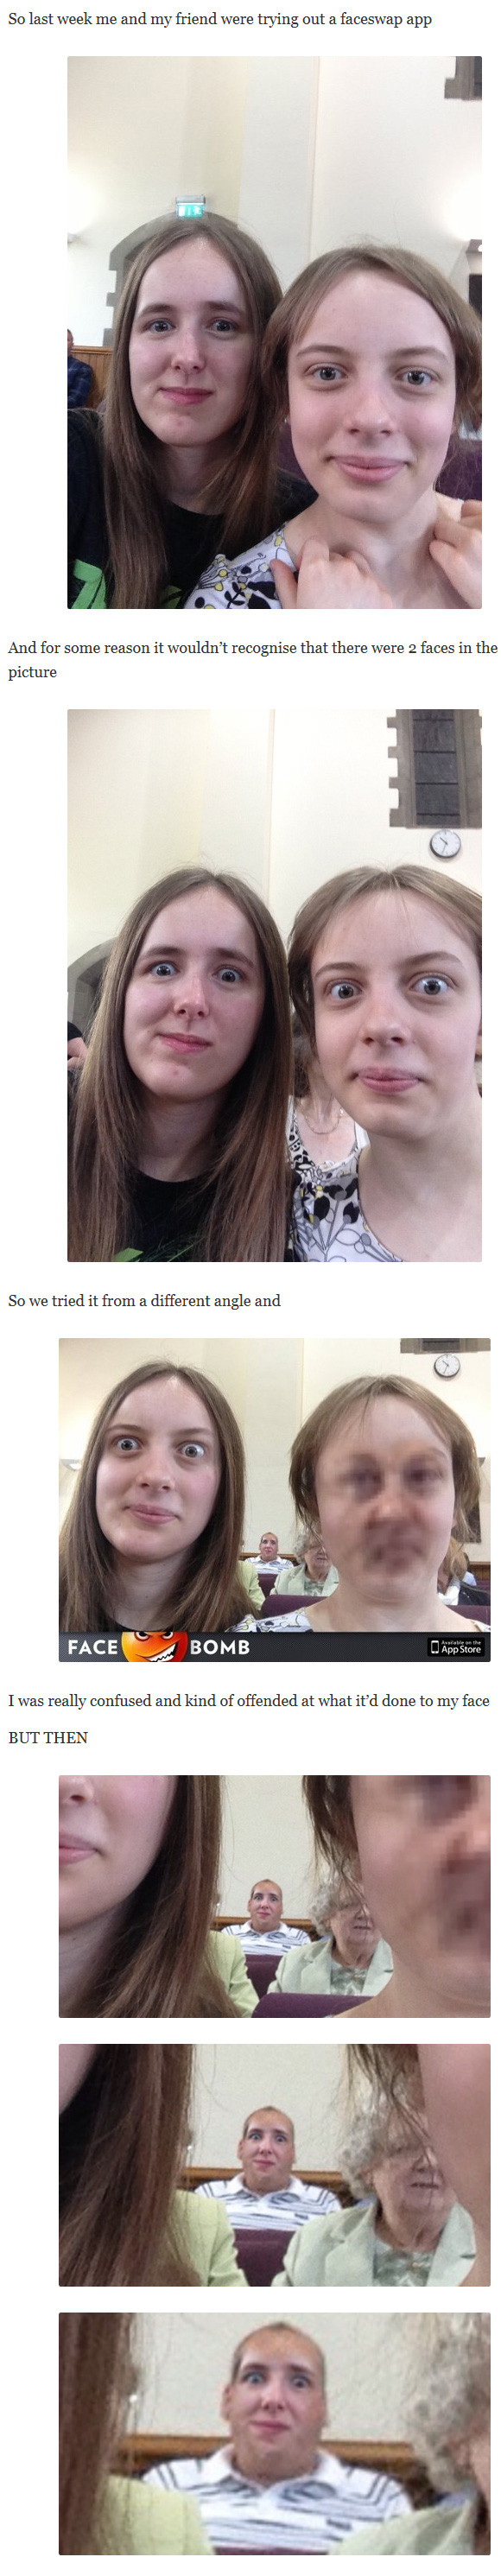 Damn you faceswap! XD